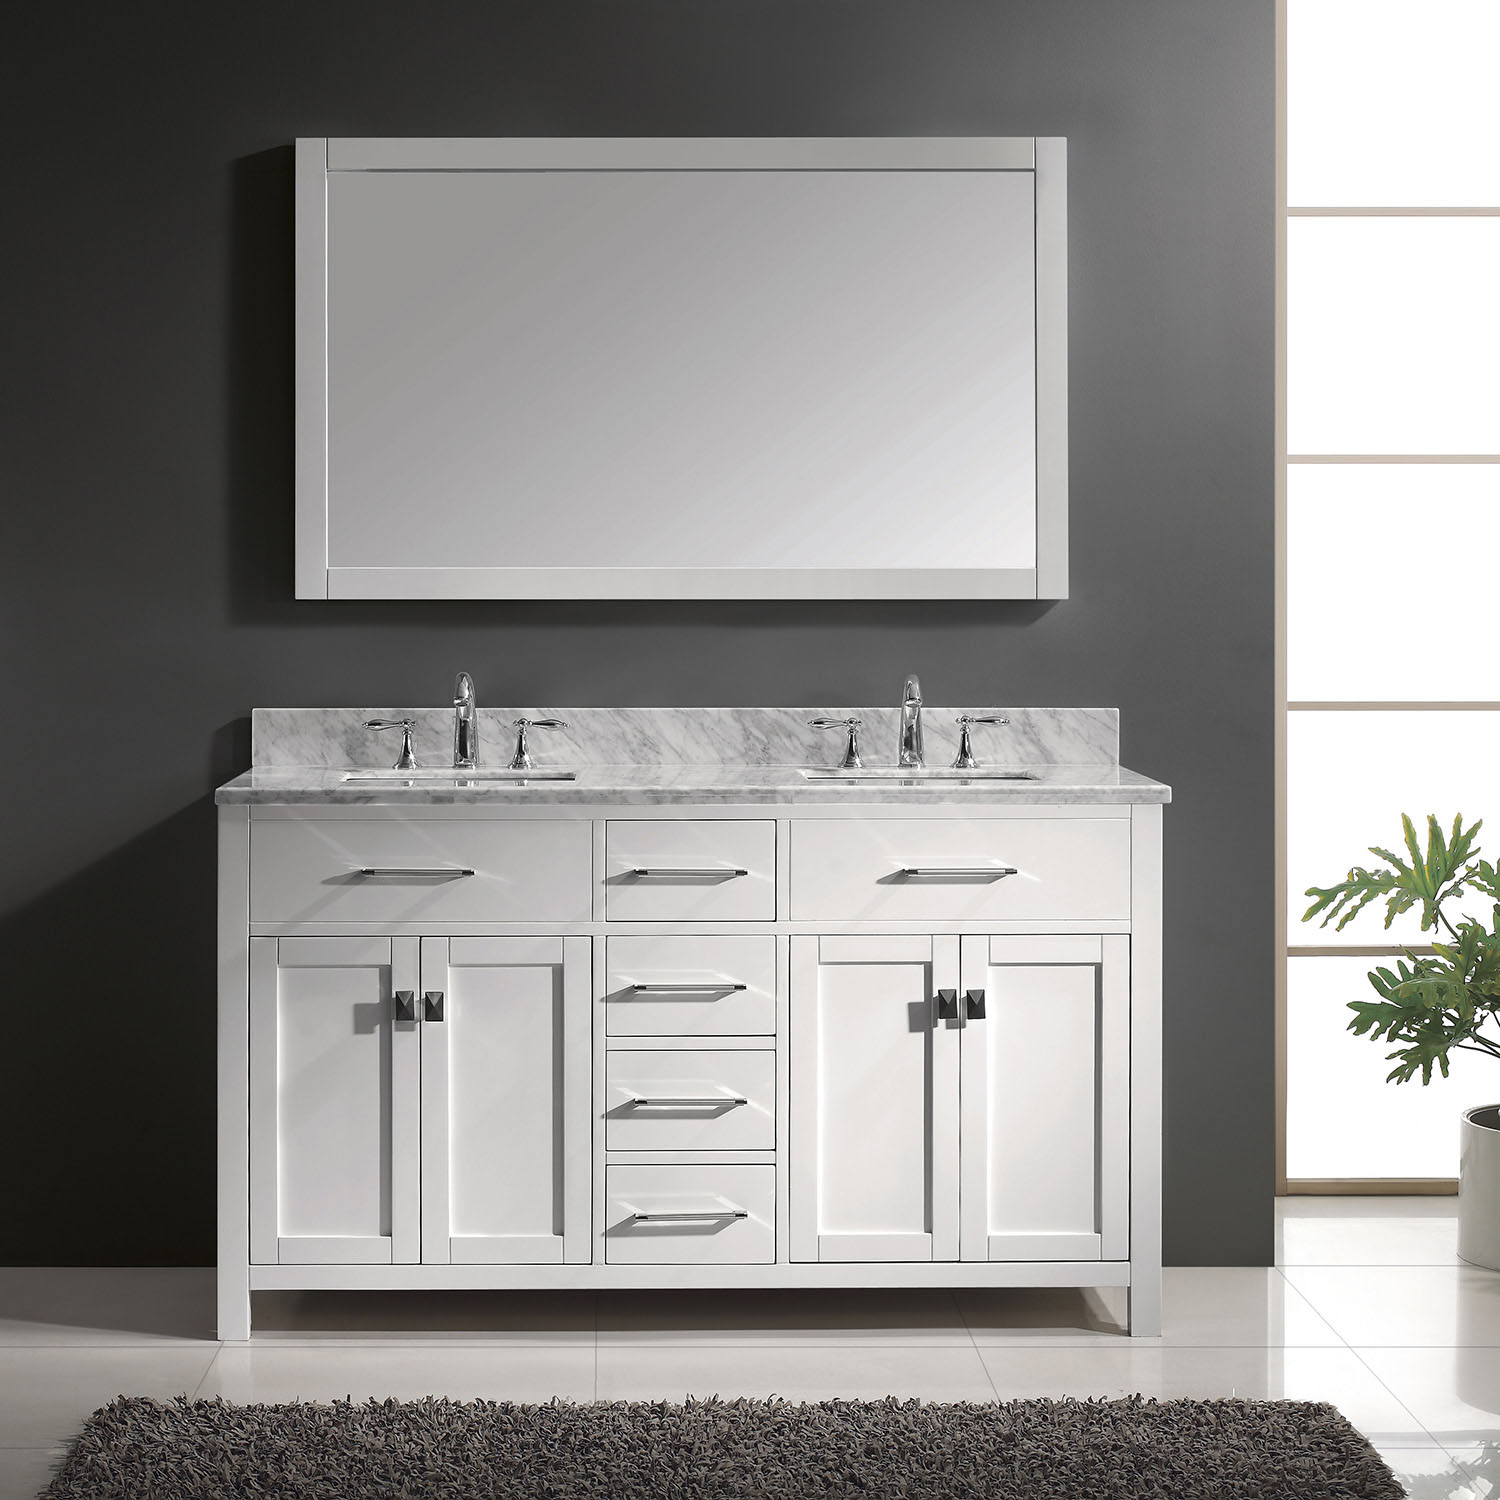 ebay p bathroom sink s of double kokols set picture caius vanity